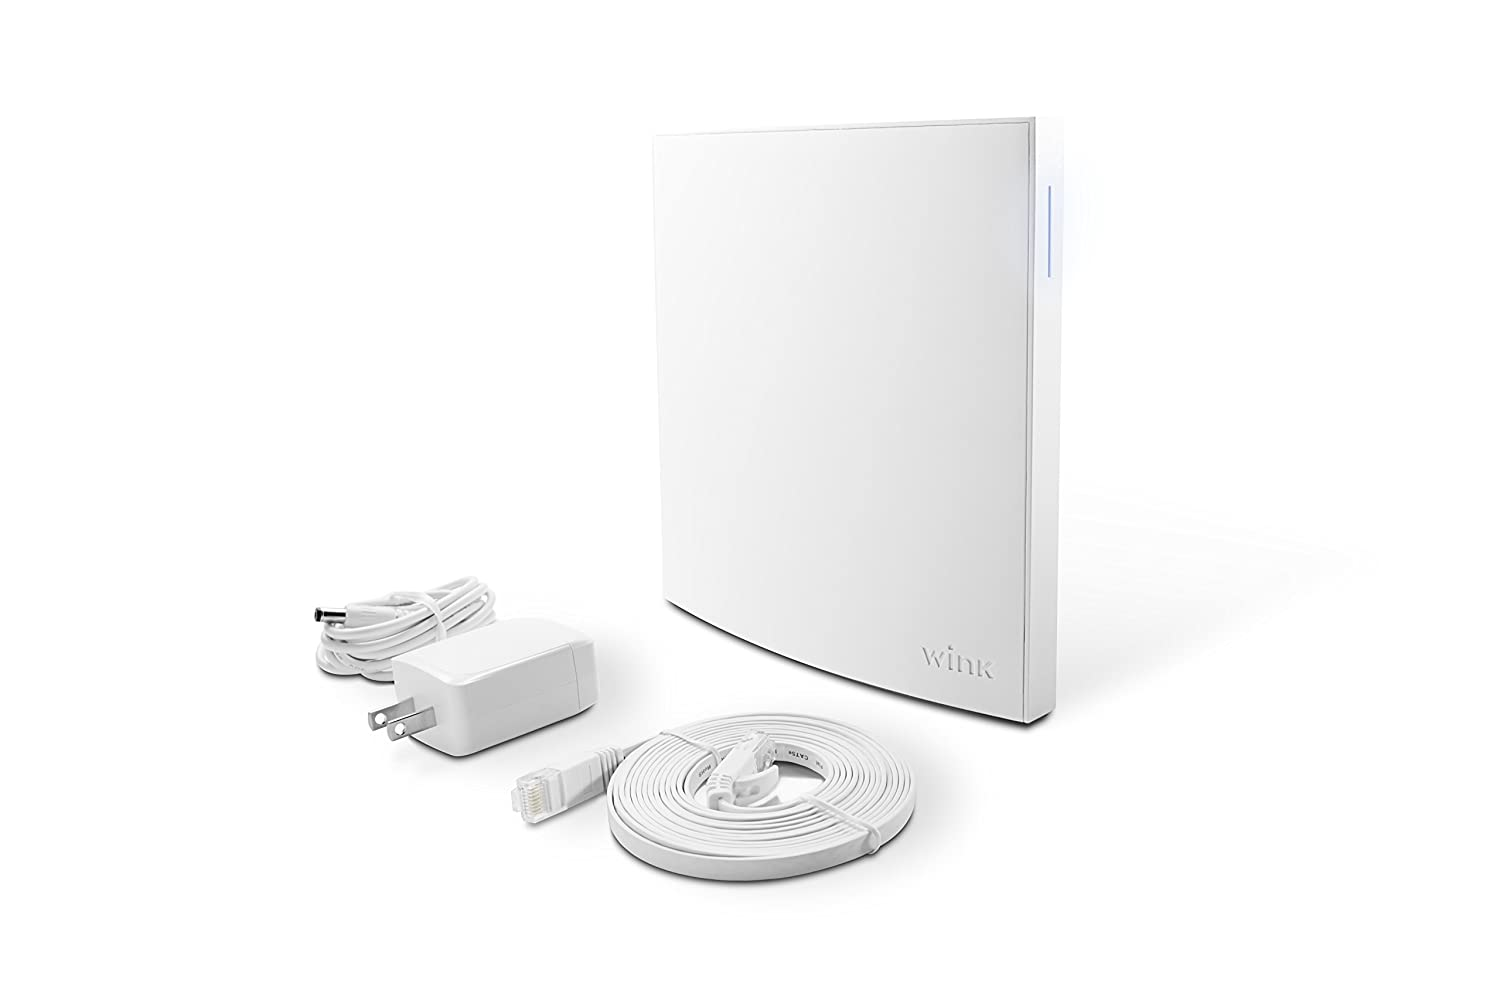 Top 4 Best Smart Home Hubs (2020 Reviews & Buying Guide) 3